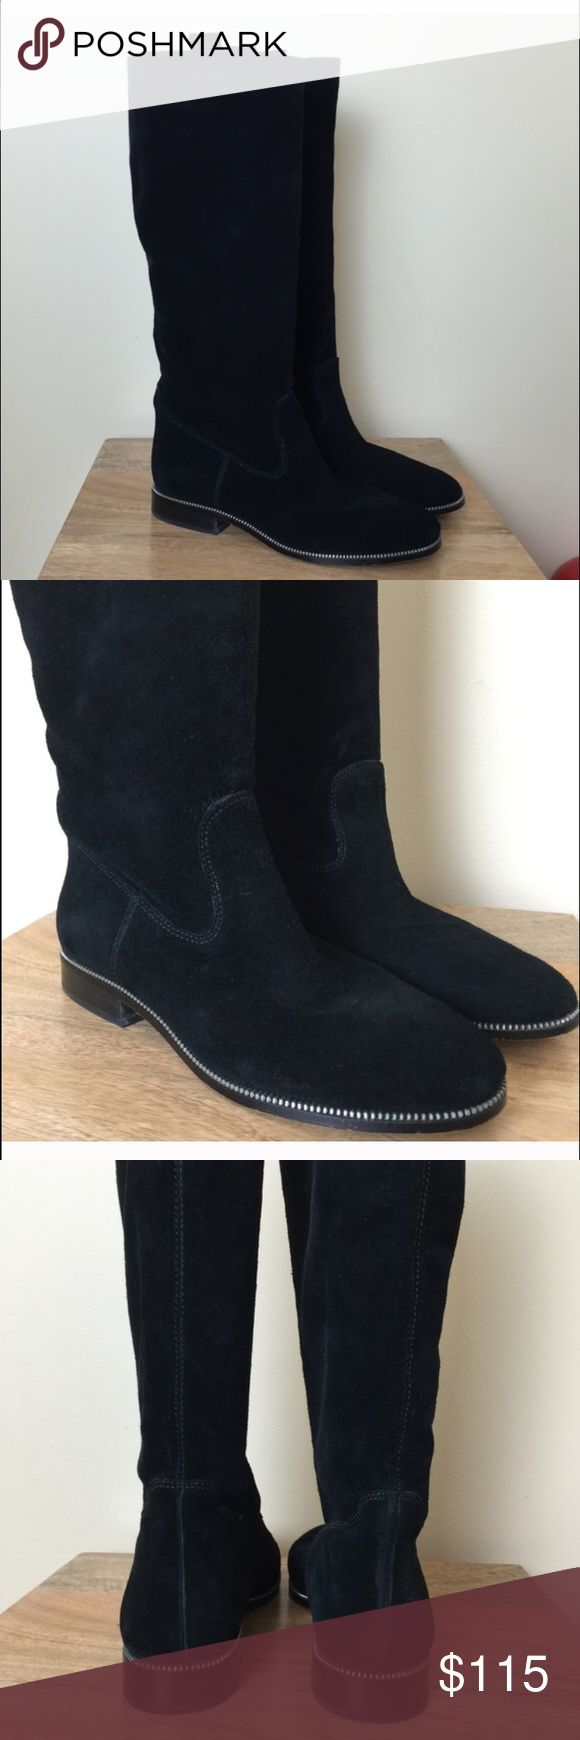 Black suede knee high MK boots Black suede knee high MK boots good condition (reposh) size 9 Michael Kors Shoes